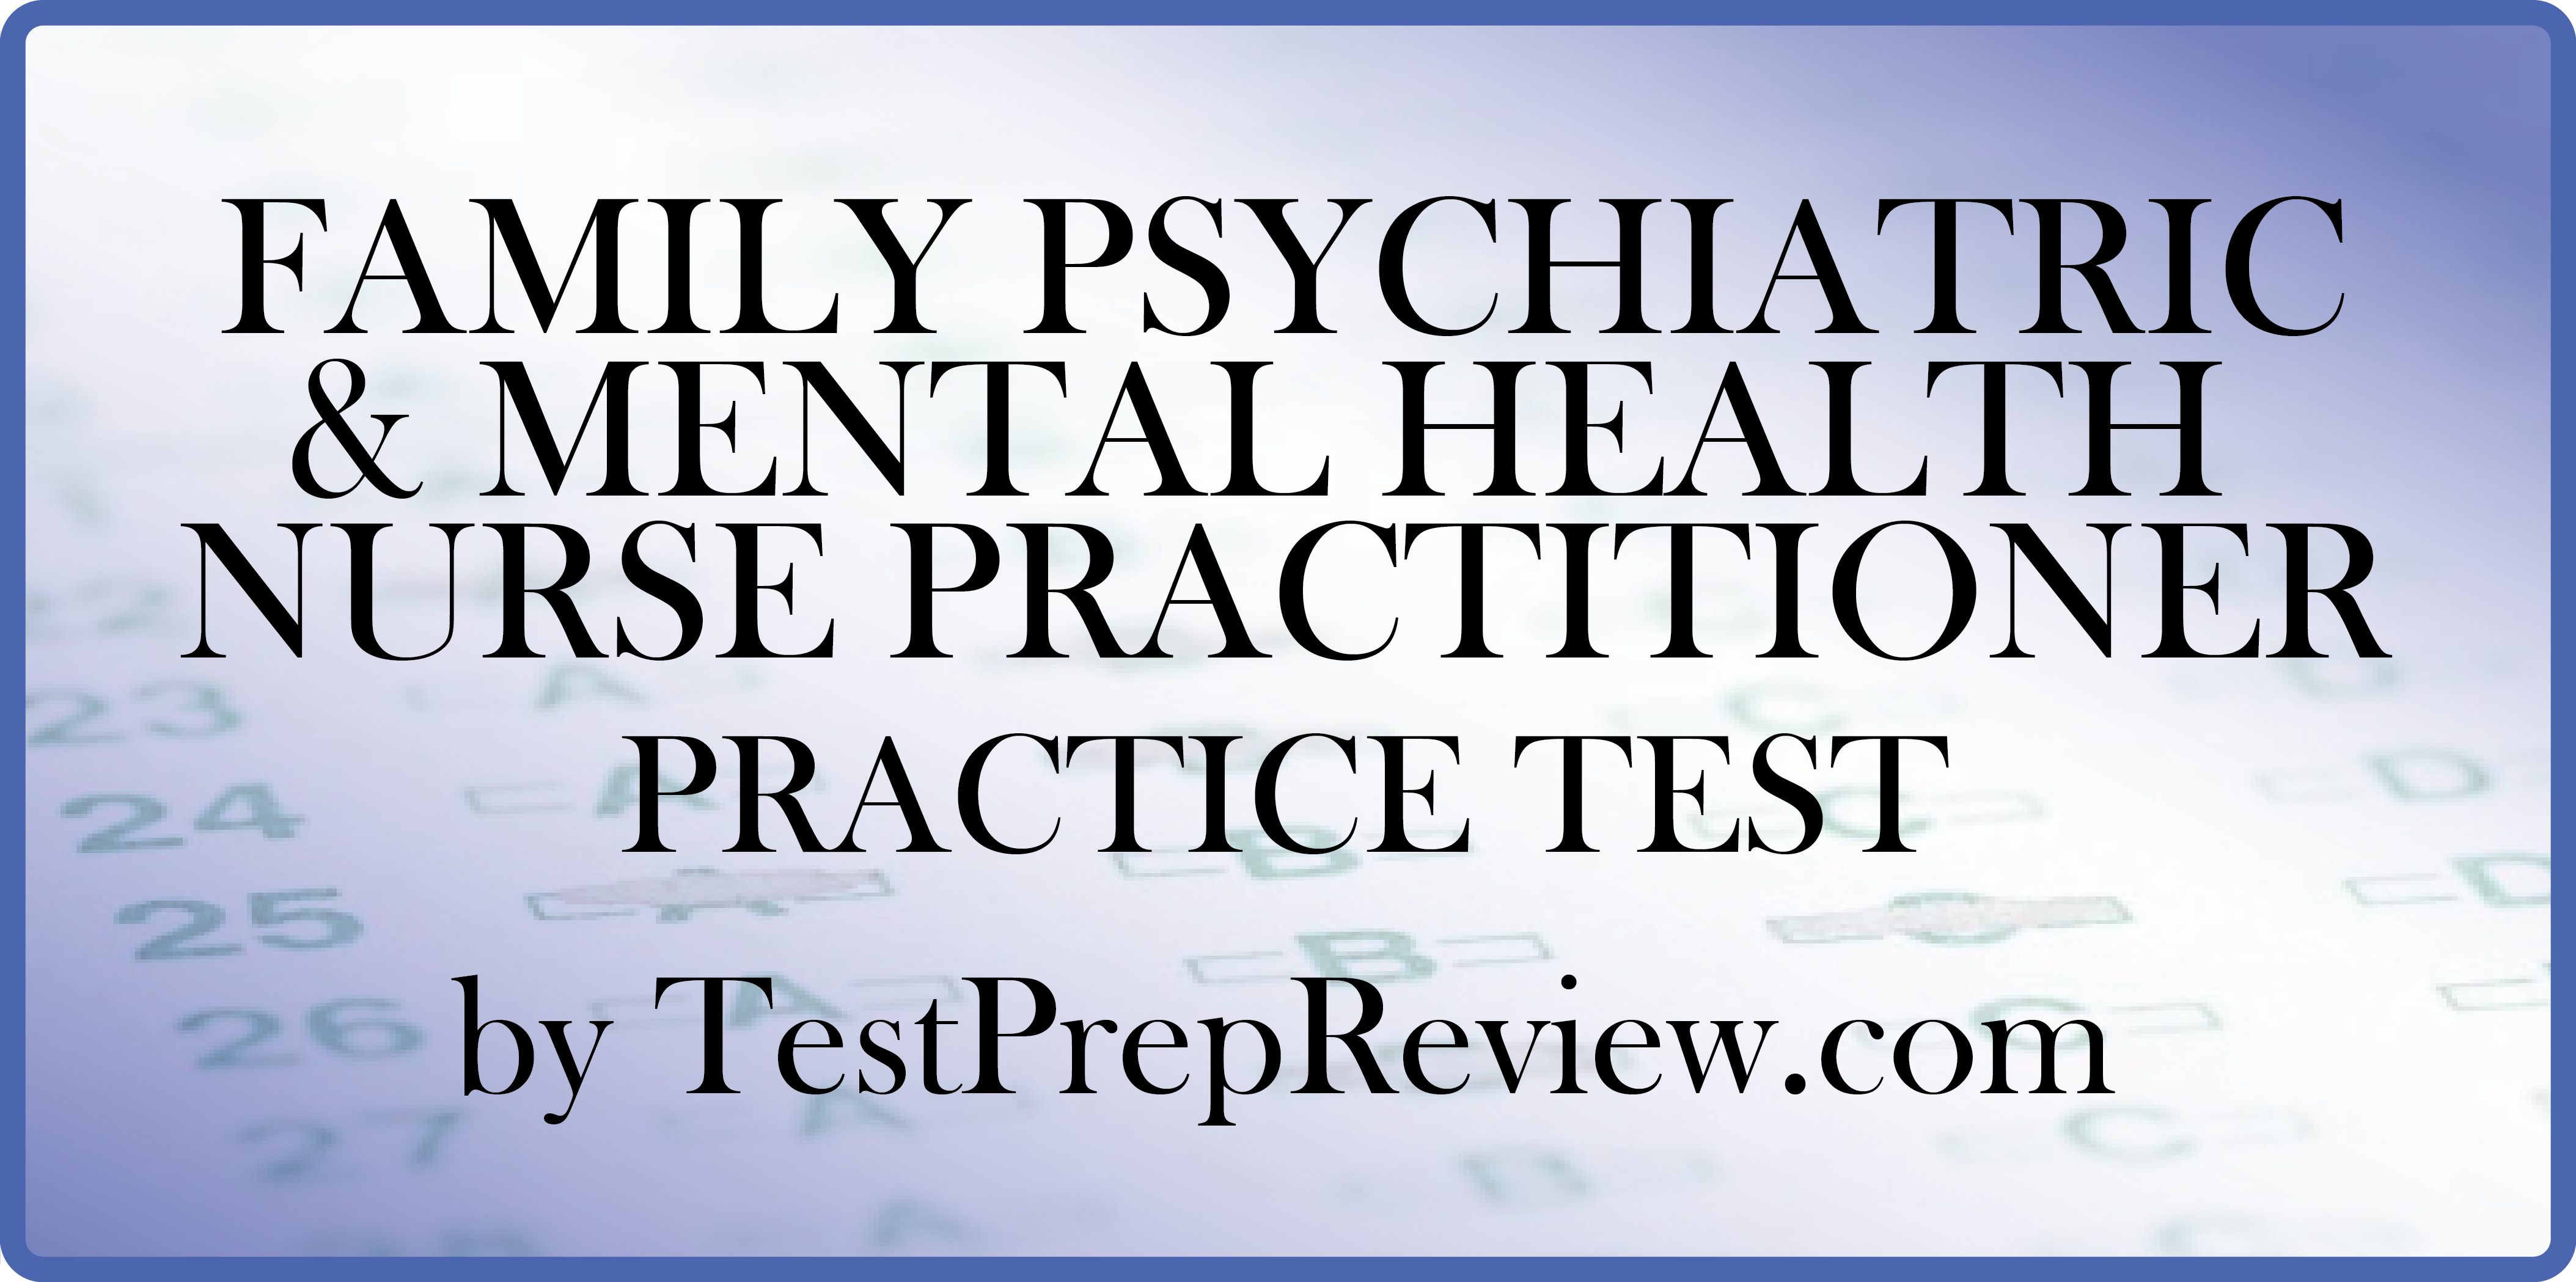 Free family psychiatric mental health nurse practitioner free family psychiatric mental health nurse practitioner practice test questions by testprepreview be prepared xflitez Gallery